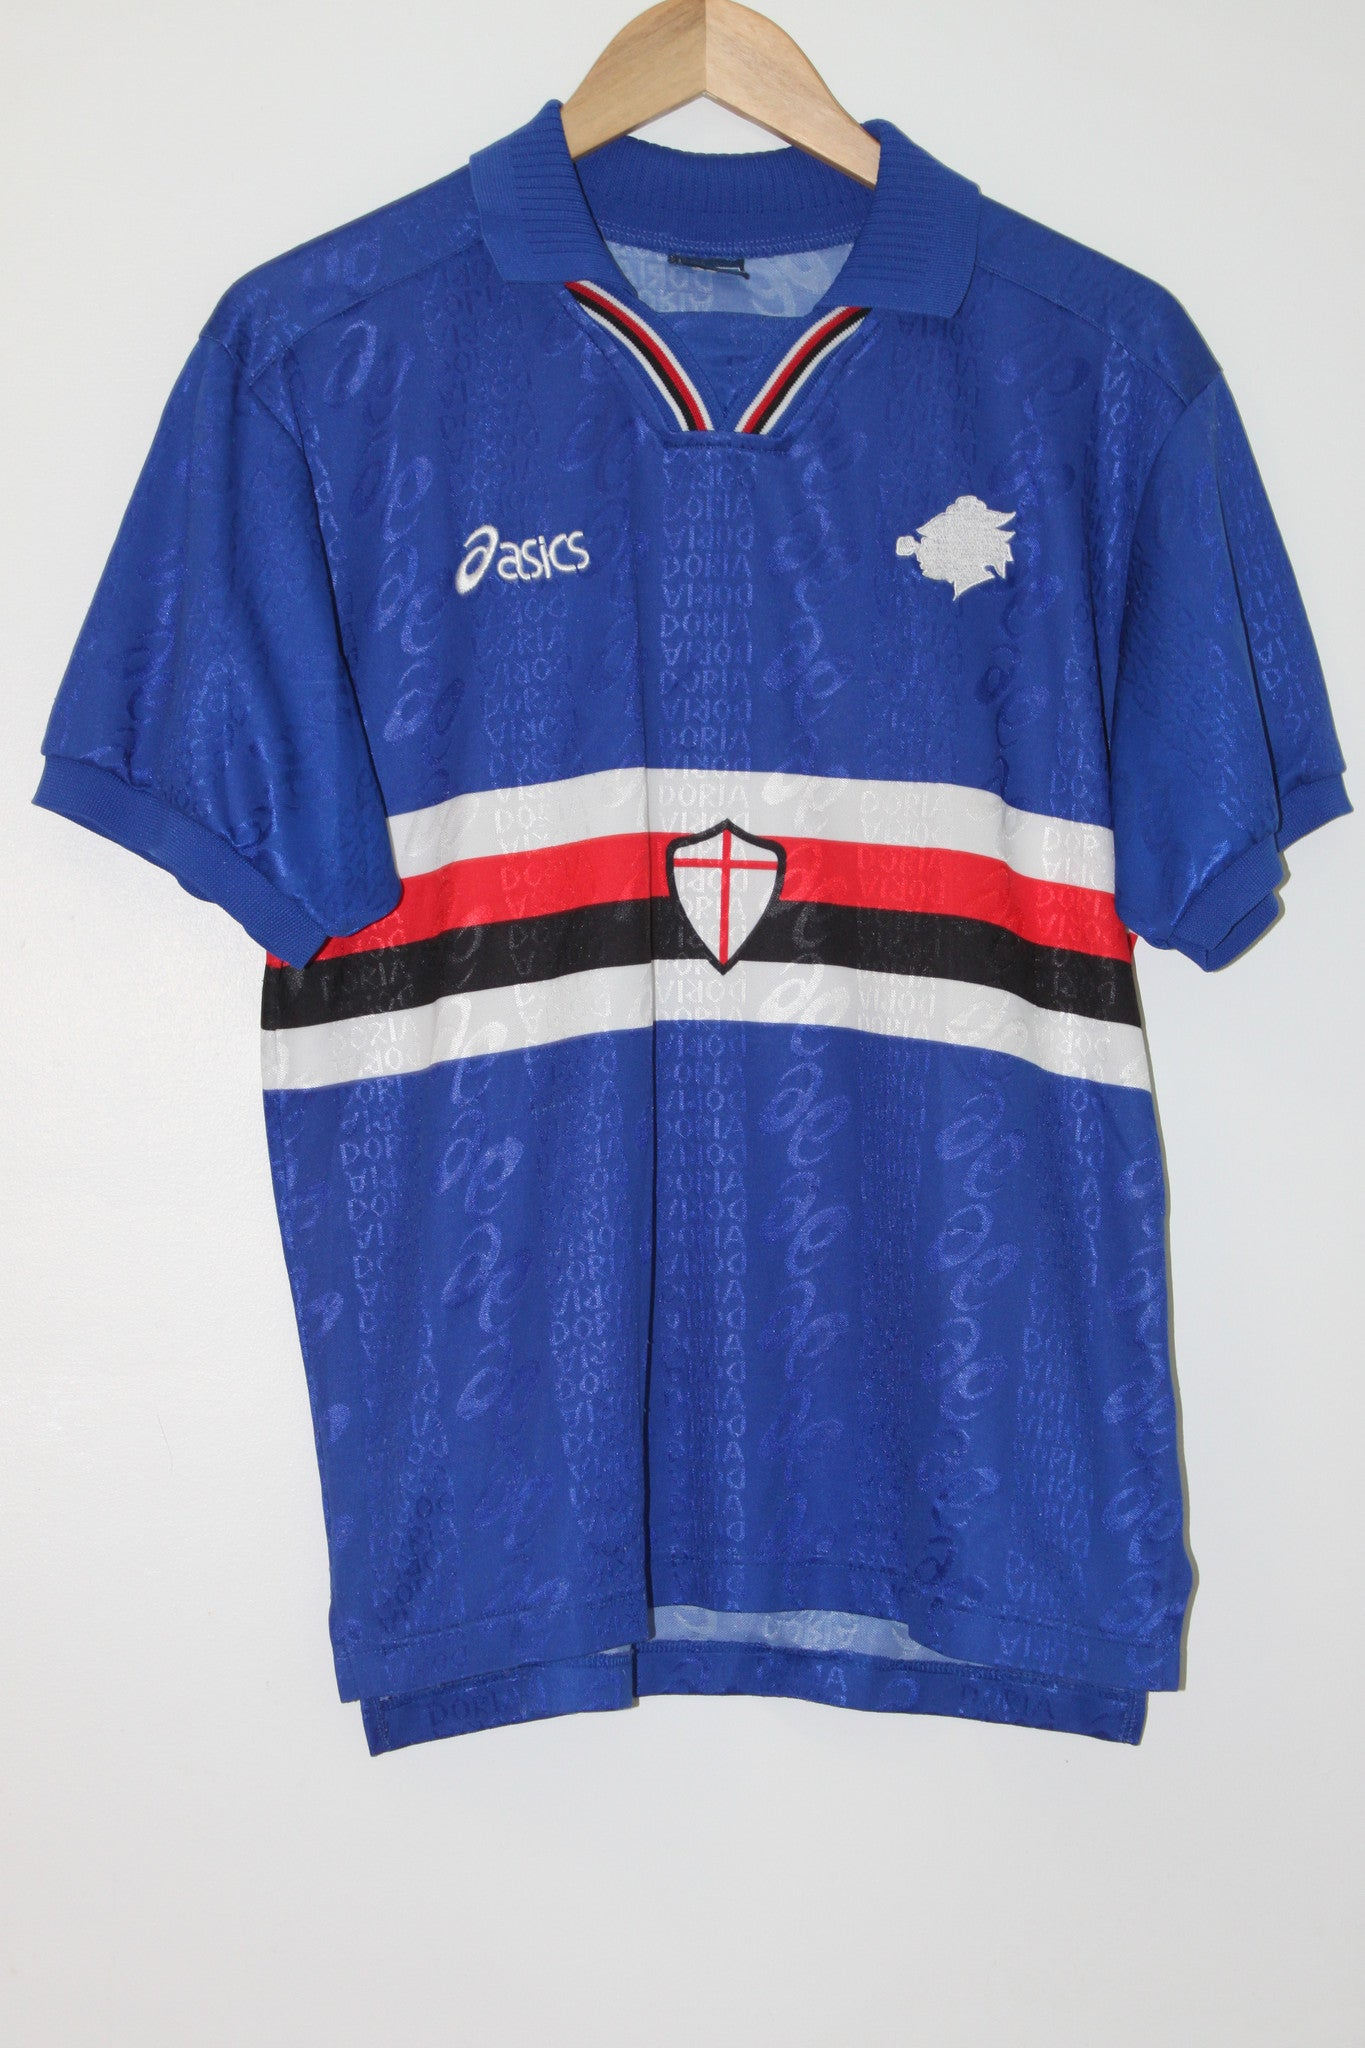 Sampdoria 1996-1997 Home Shirt Medium Asics